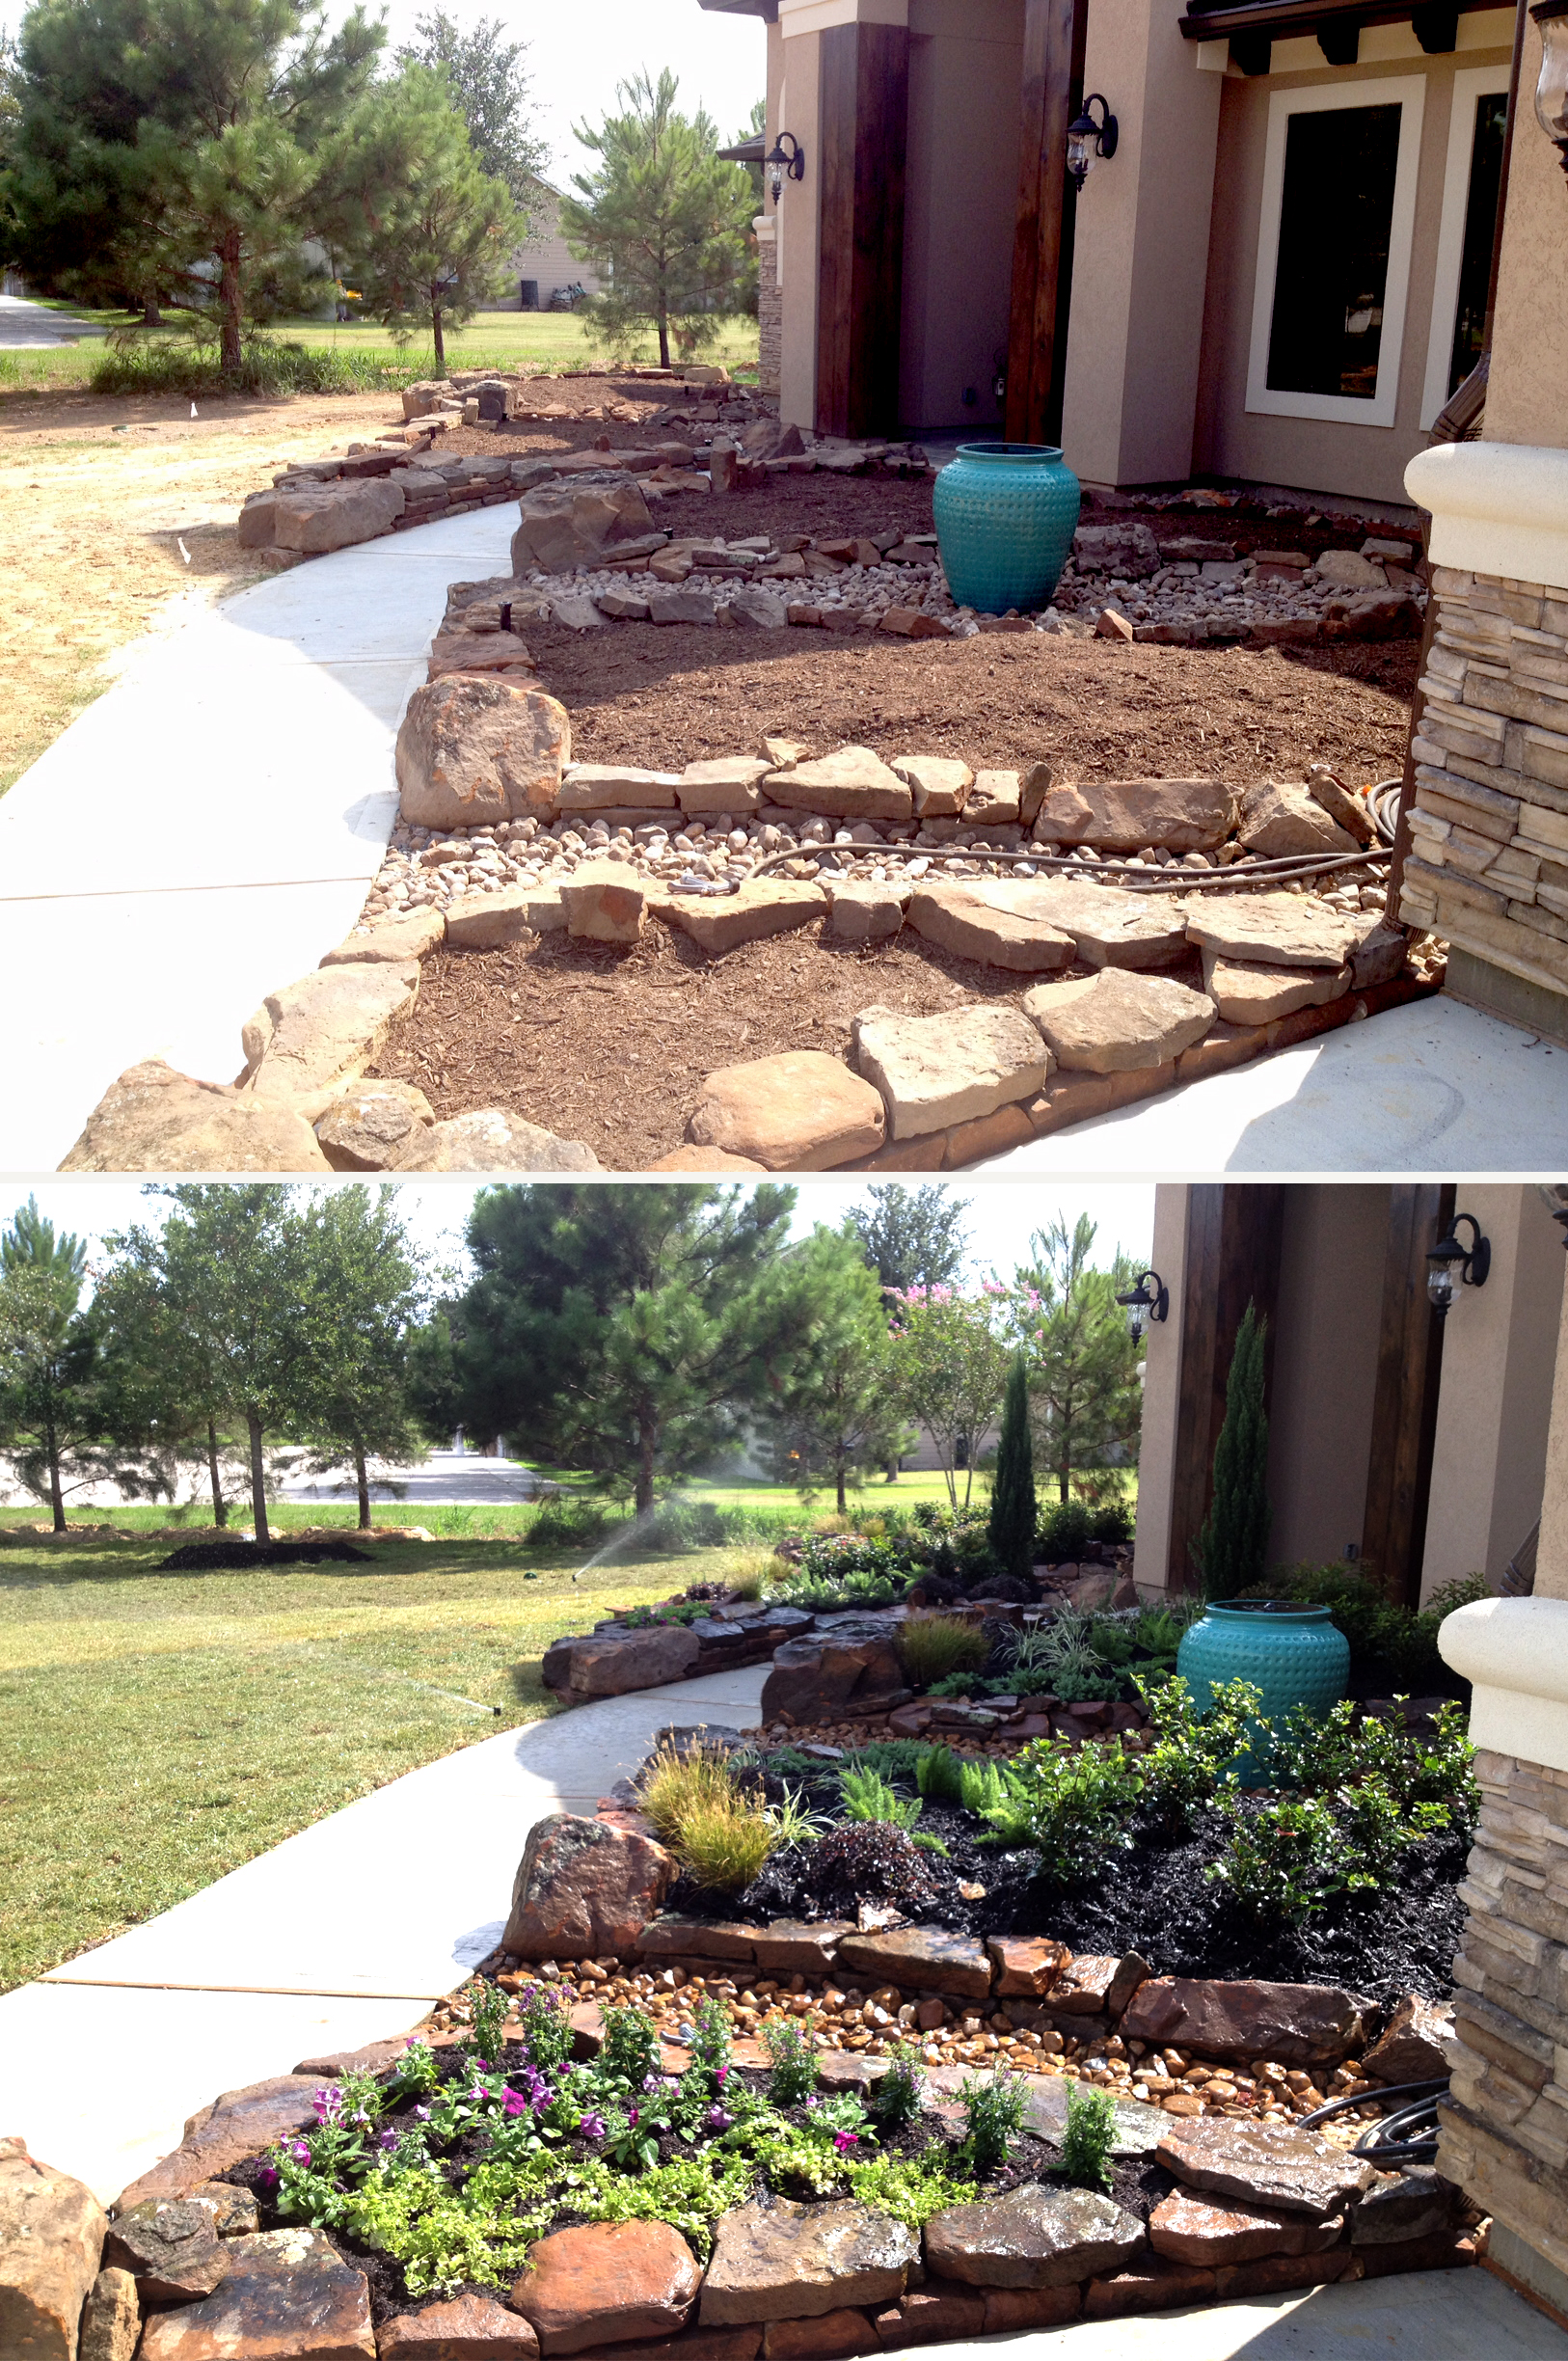 Texas turf management commercial landscaping texas turf for Home turf texas landscape design llc